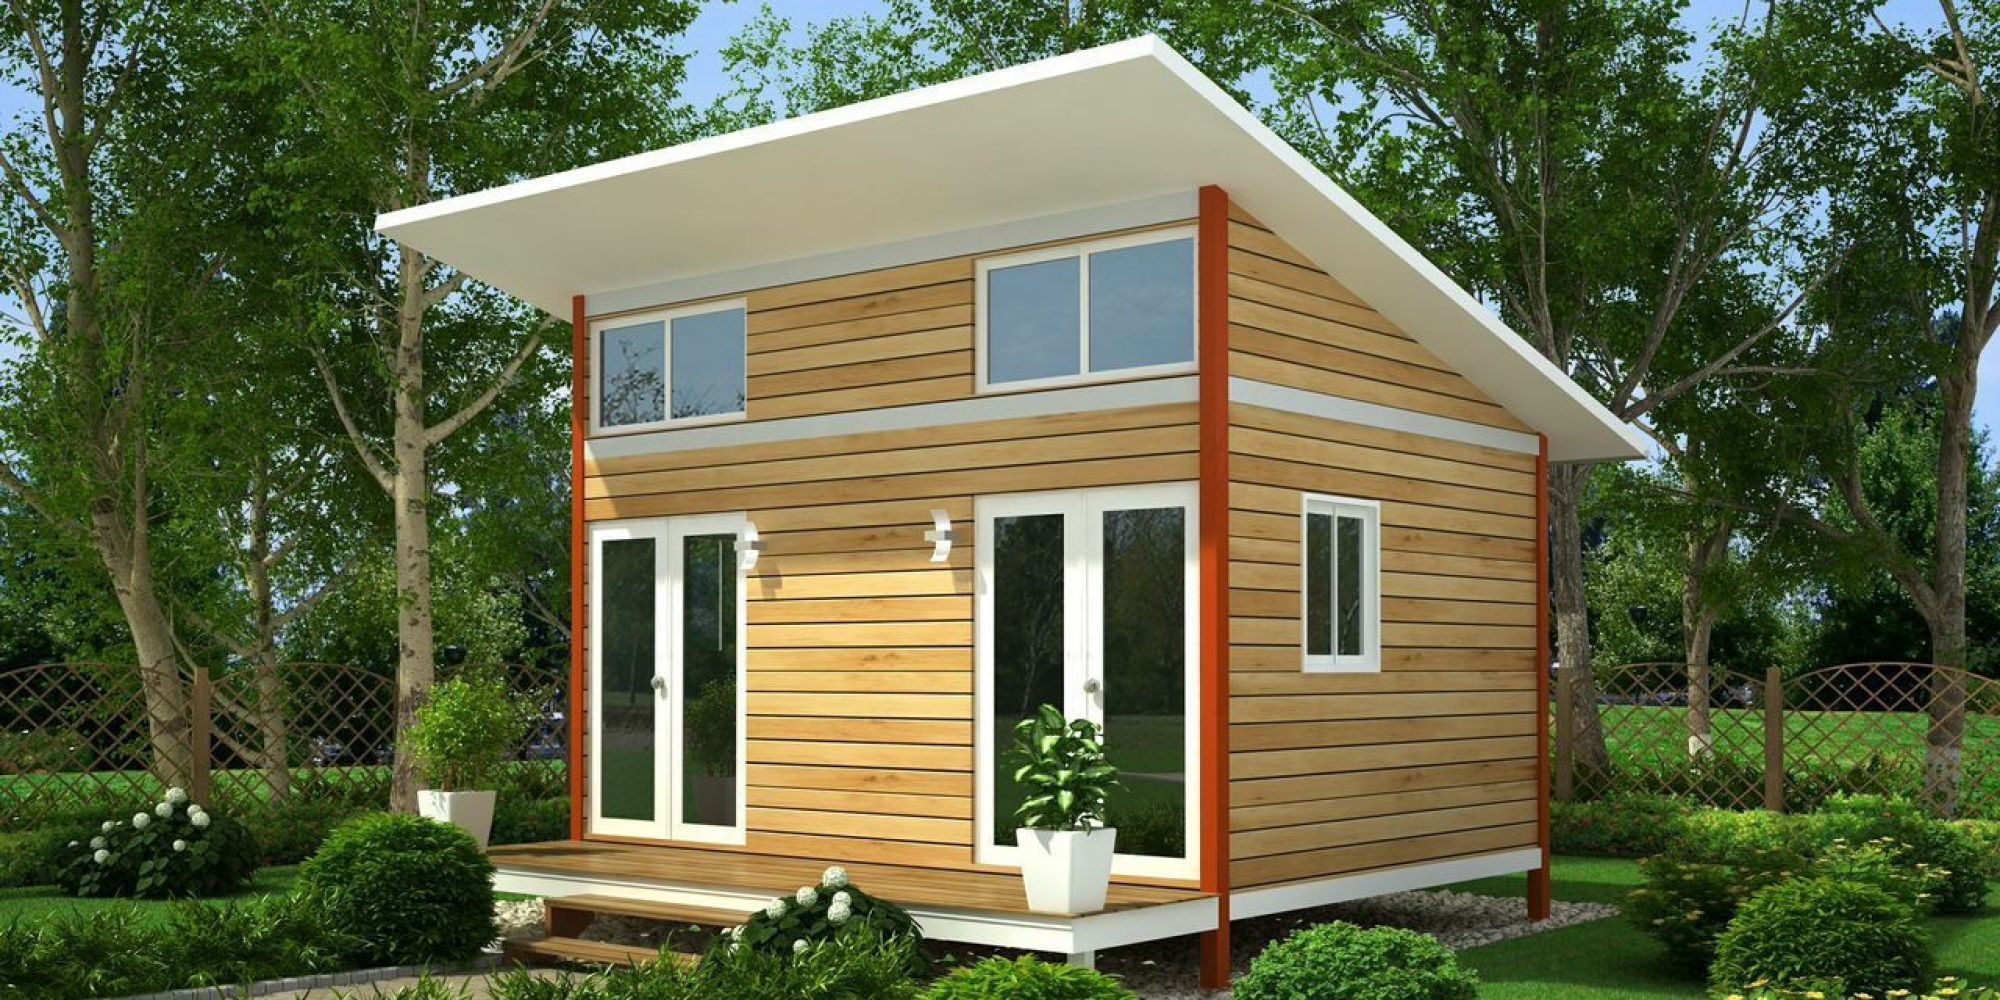 This Genius Project Would Create Tiny Homes For People Making Less ...